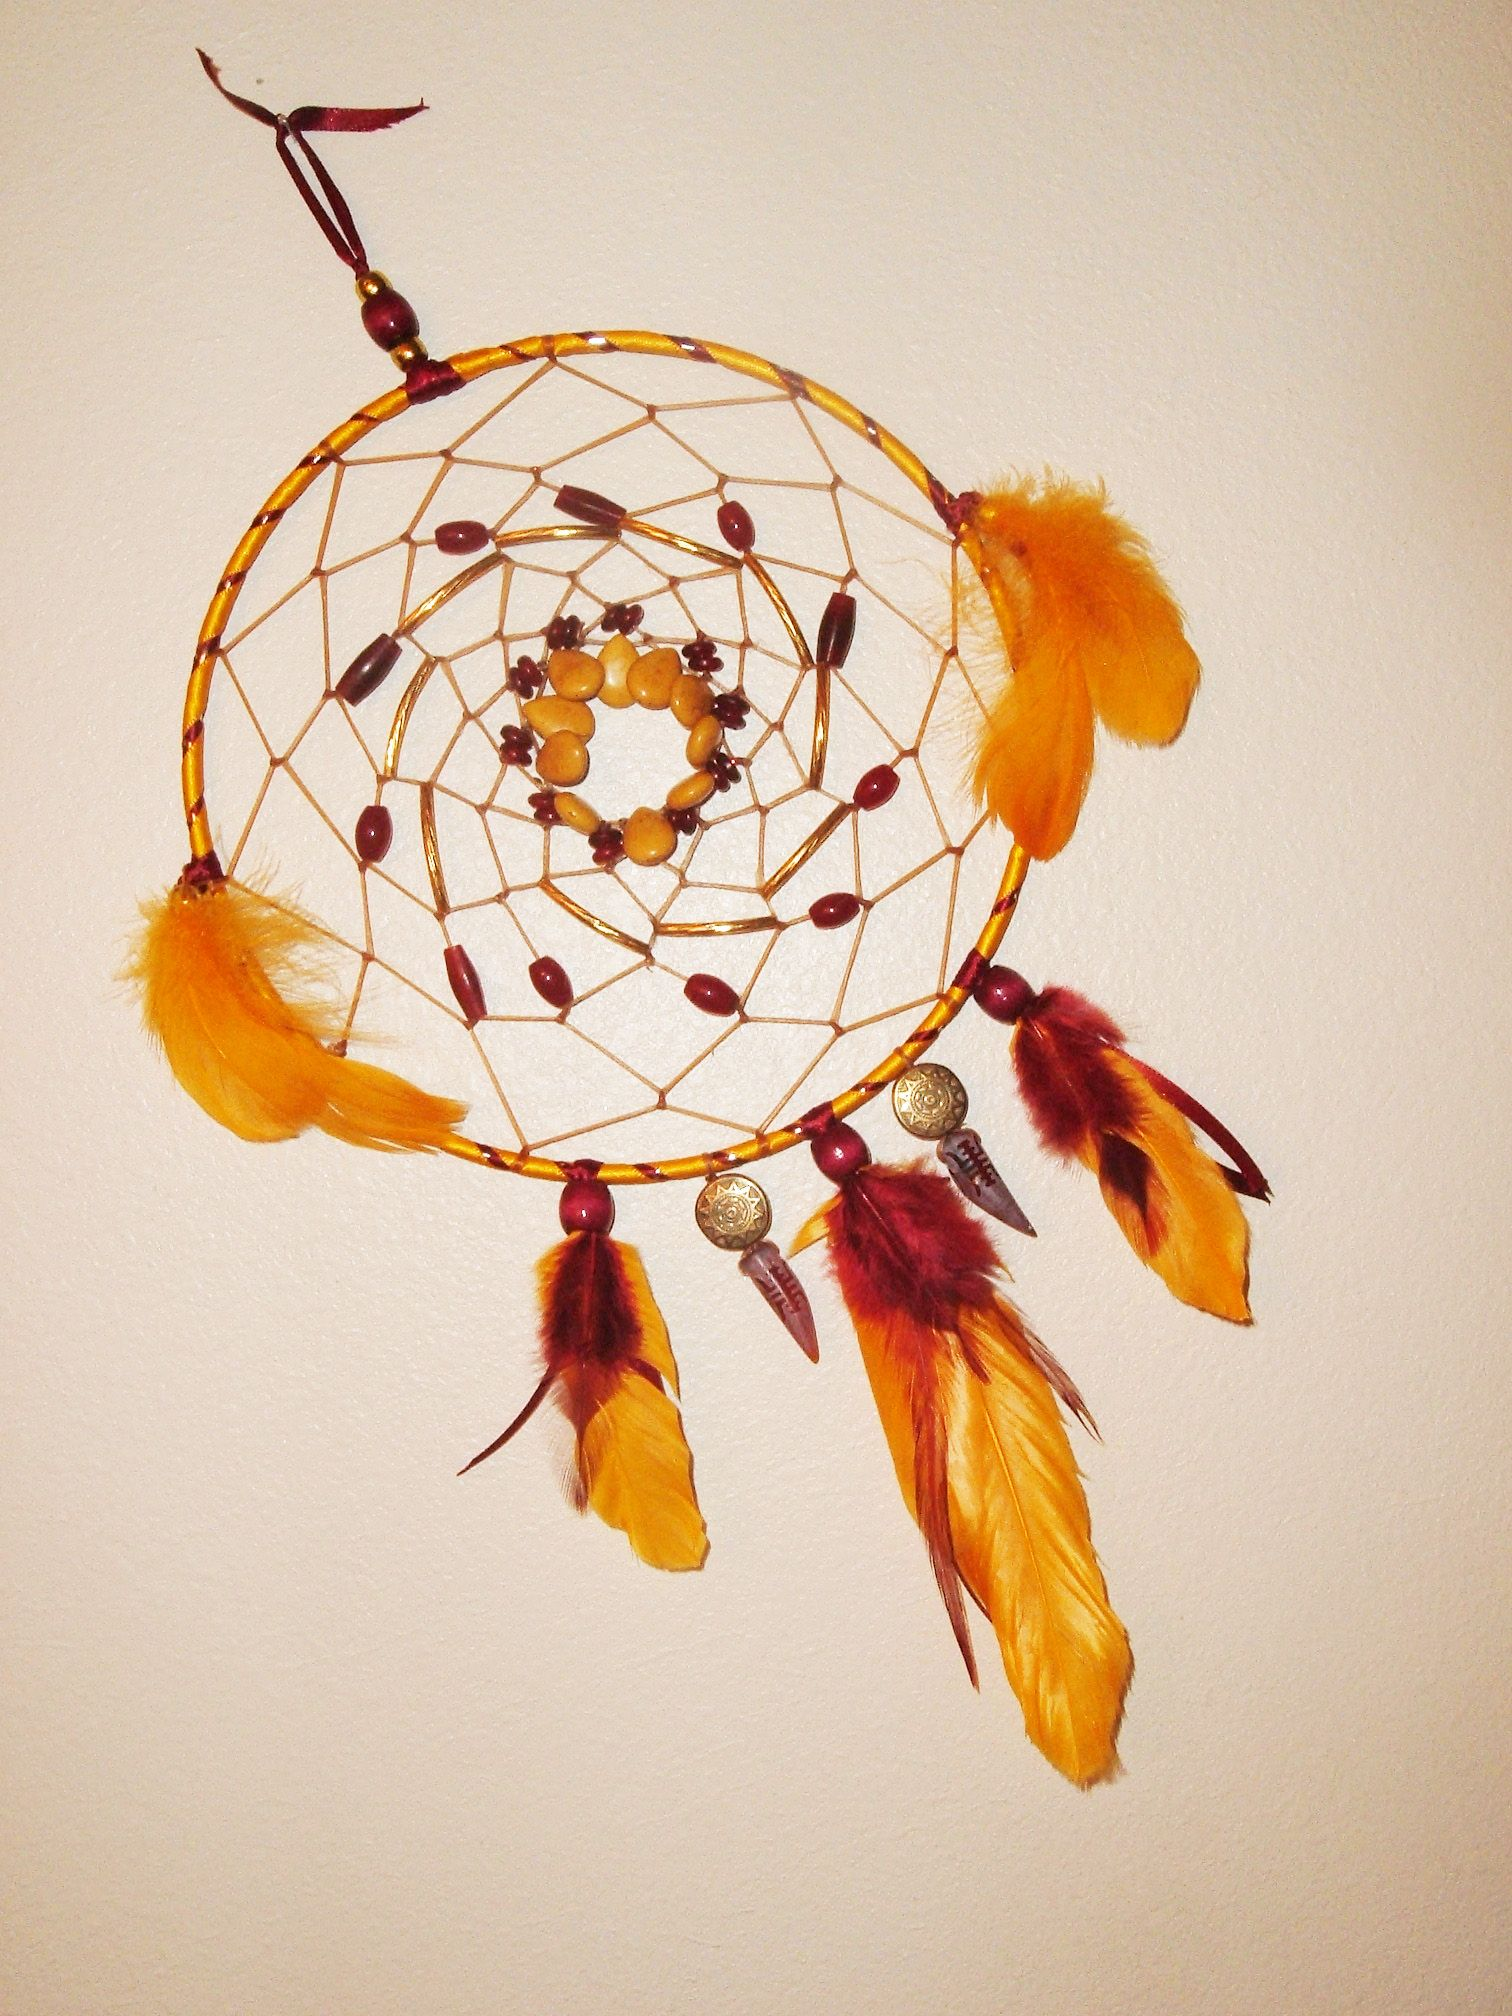 Pictures Of Dream Catchers Brilliant Florida Seminole Dream Catcher  *~*dreamcatchers*~*  Pinterest Design Inspiration